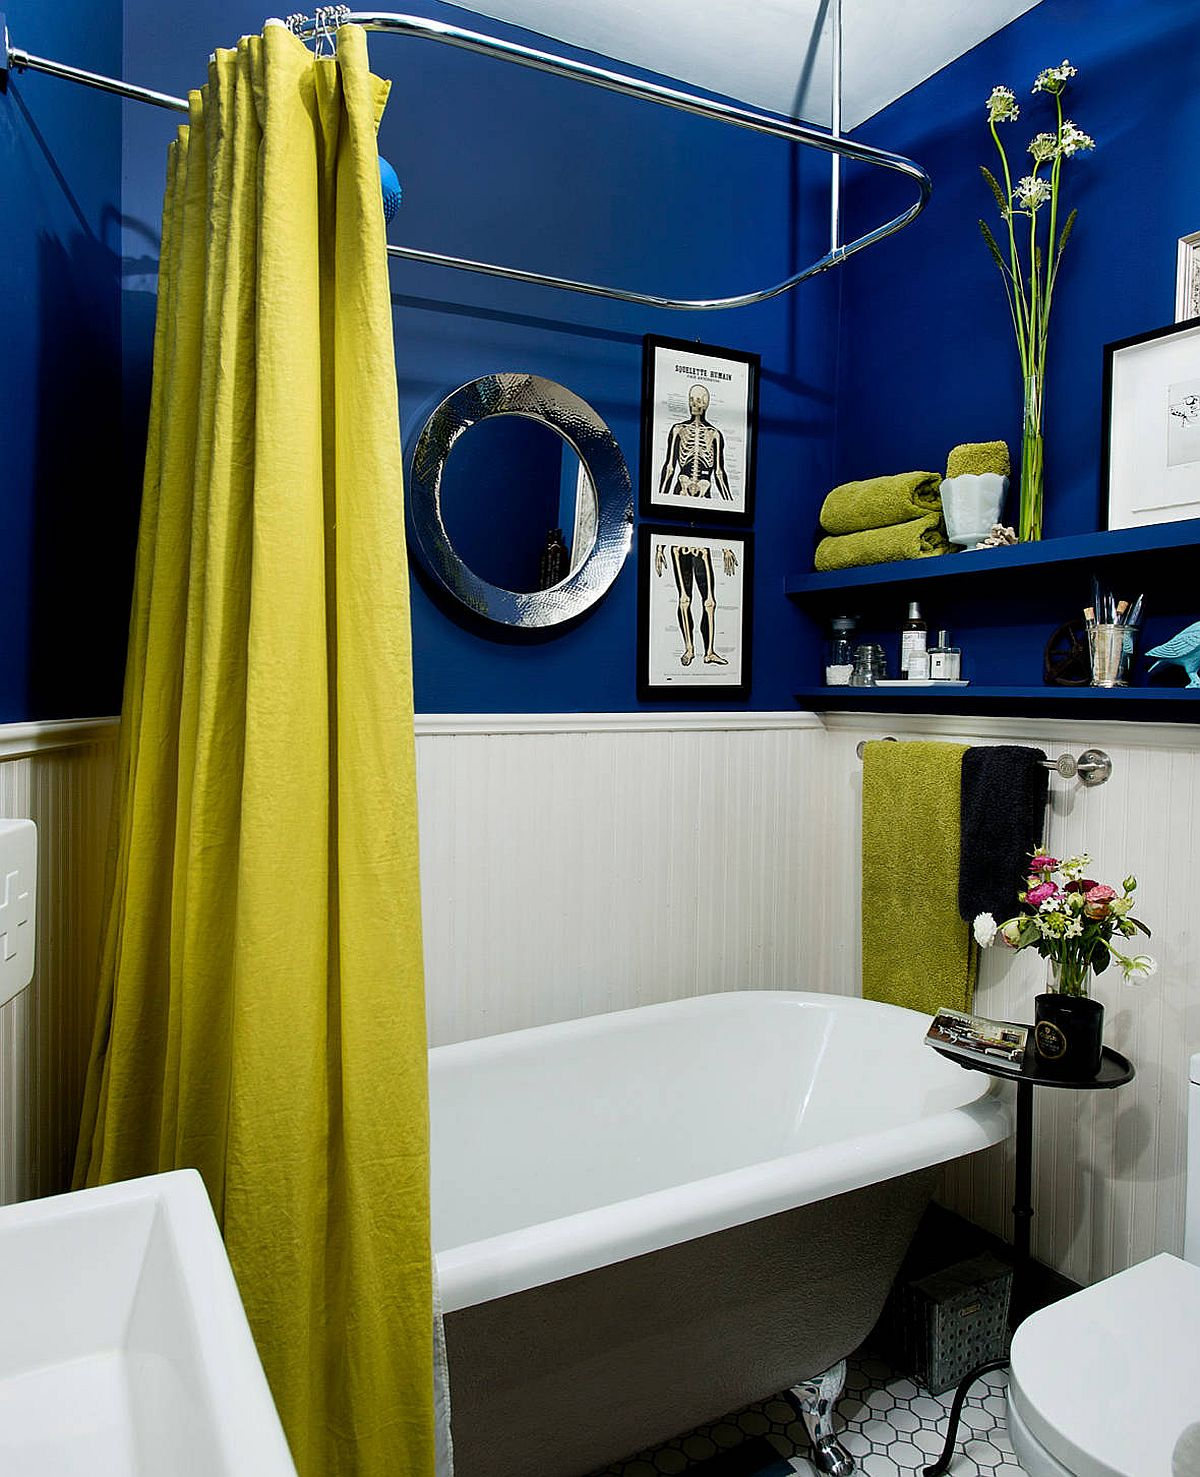 Modern eclectic bathroom in blue and white with greenish-yellow thrown into the mix